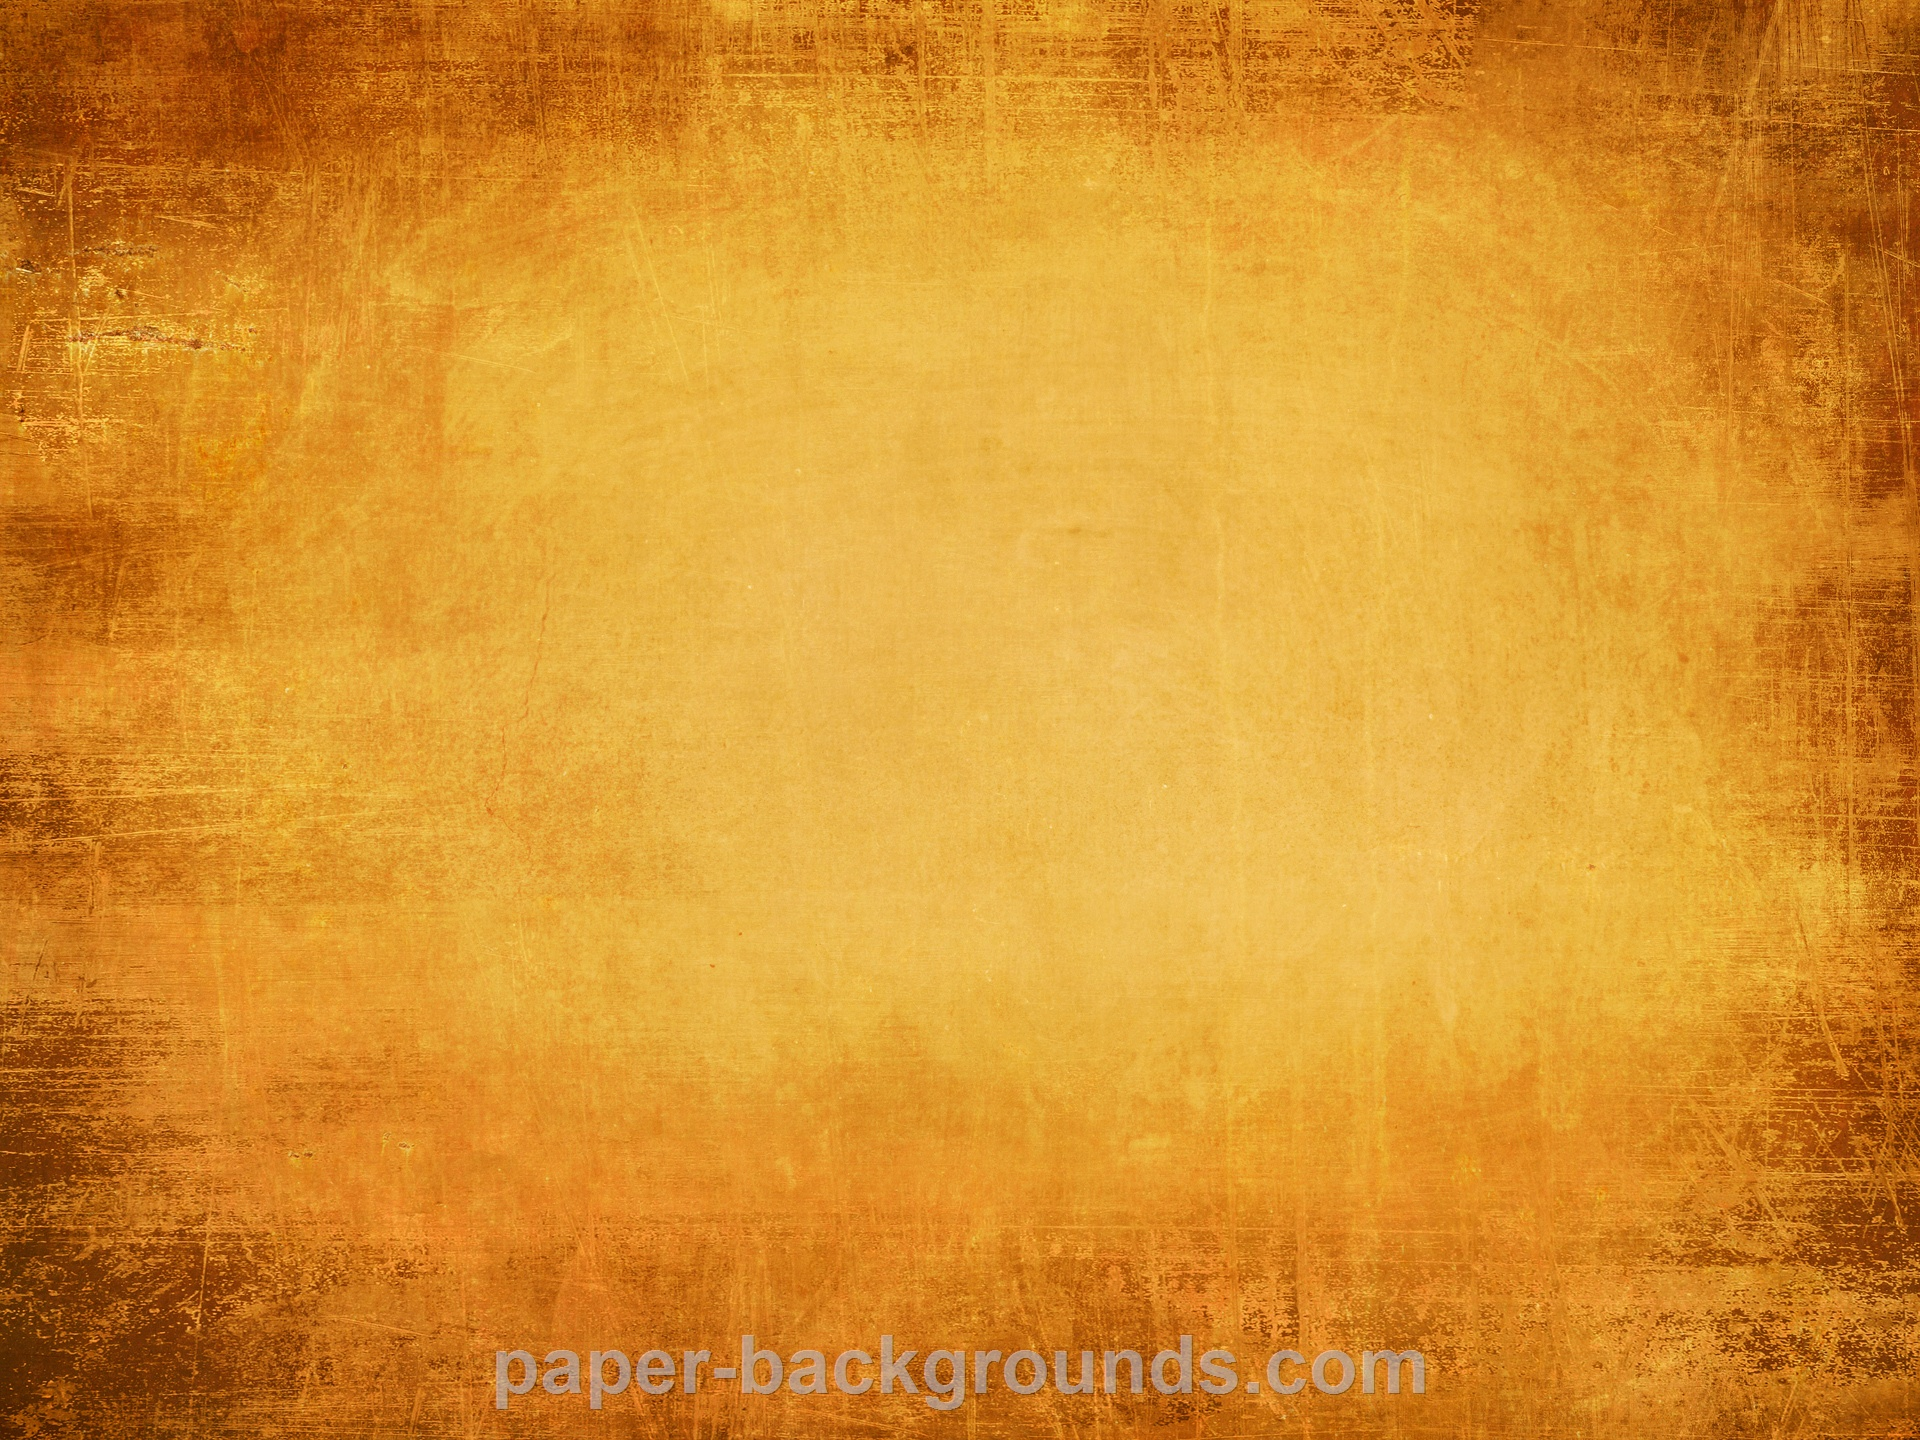 Orange Grunge Background HD